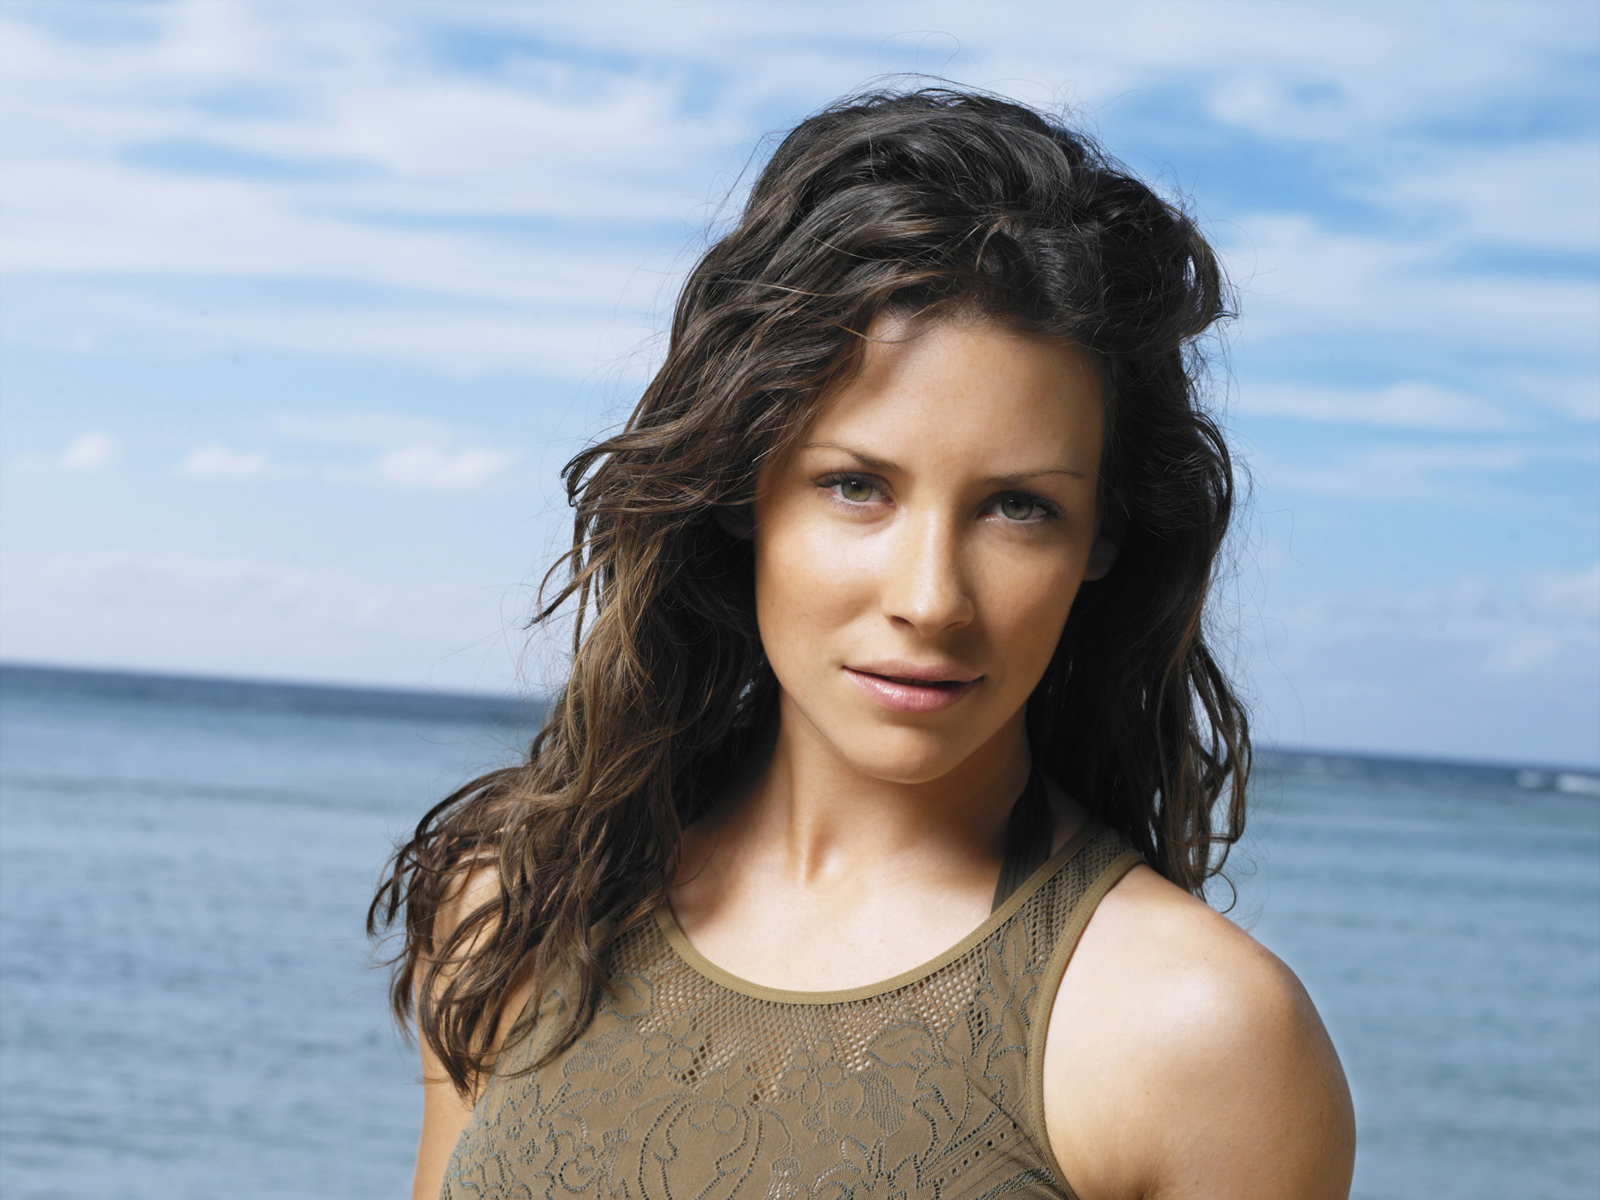 new movie on set evangeline lilly hd desktop wallpaper background 1600x1200